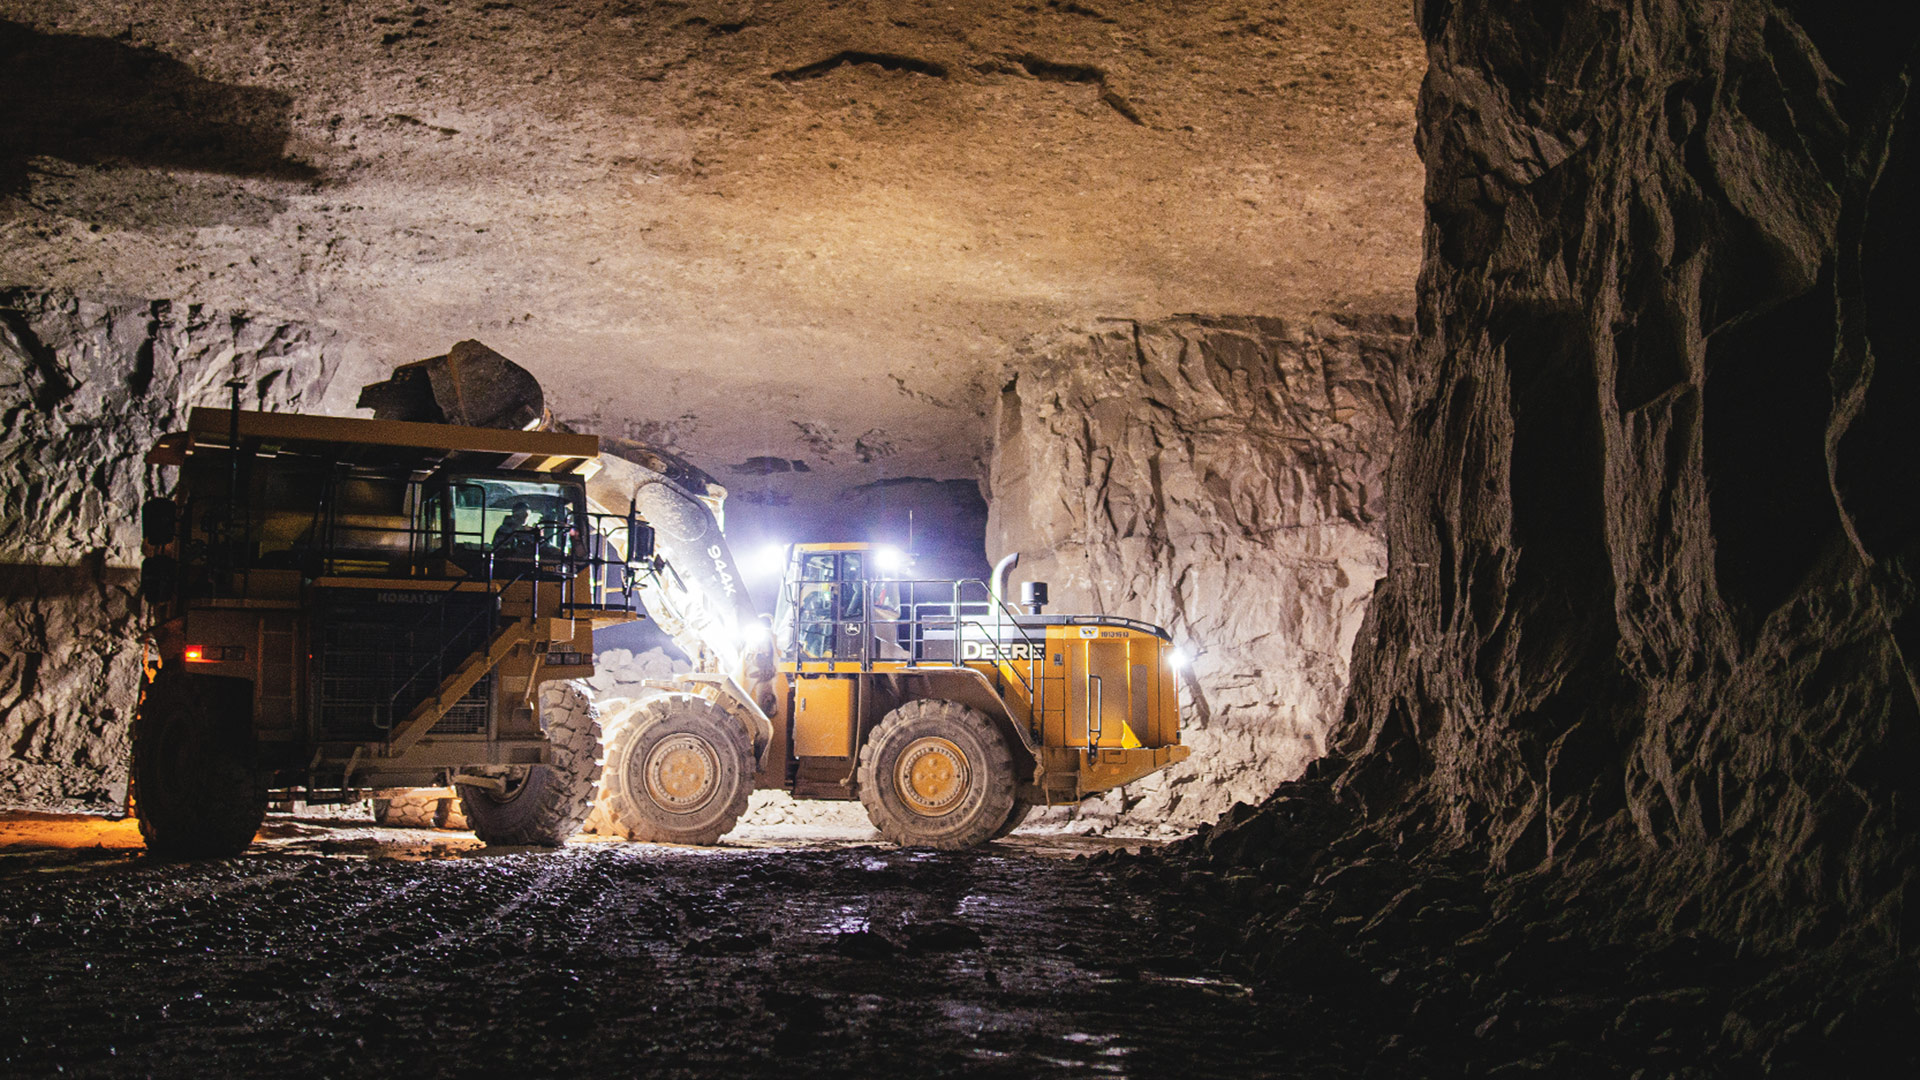 A loader dumping rock into a dump truck in an underground mine